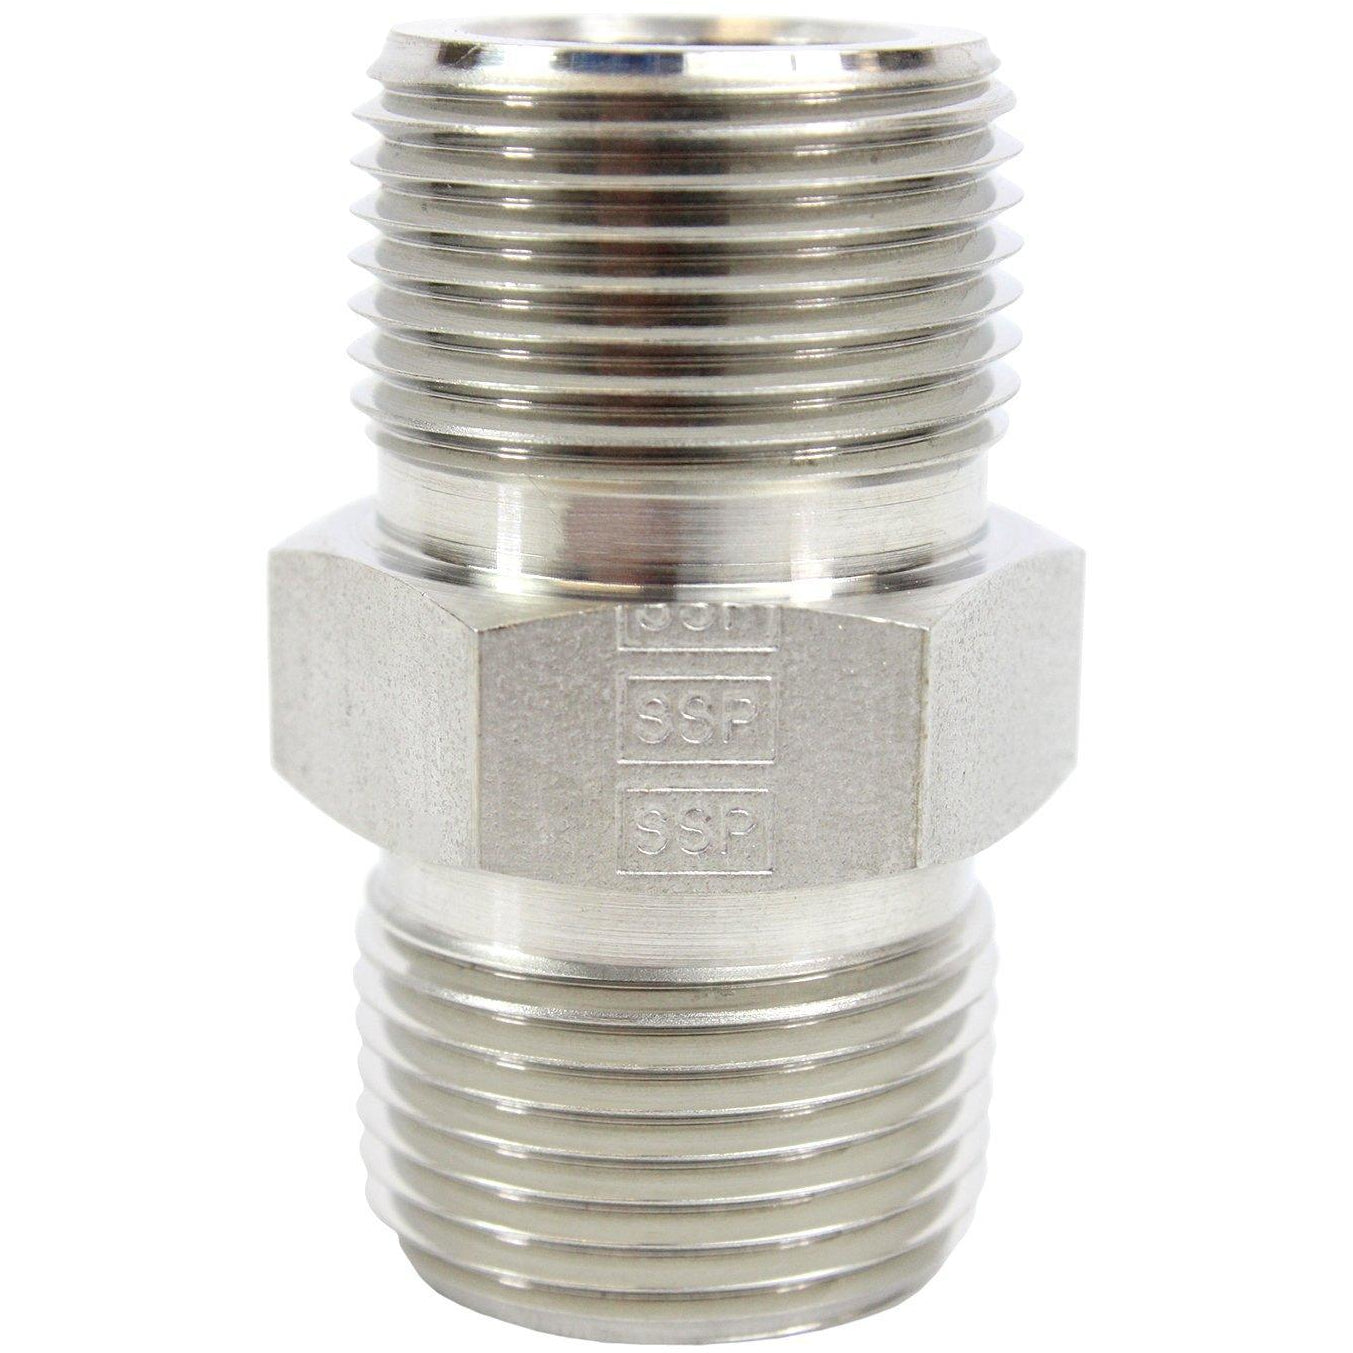 SSP - Hex Nipple Shop All Categories SSP Corporation 1/4-inch